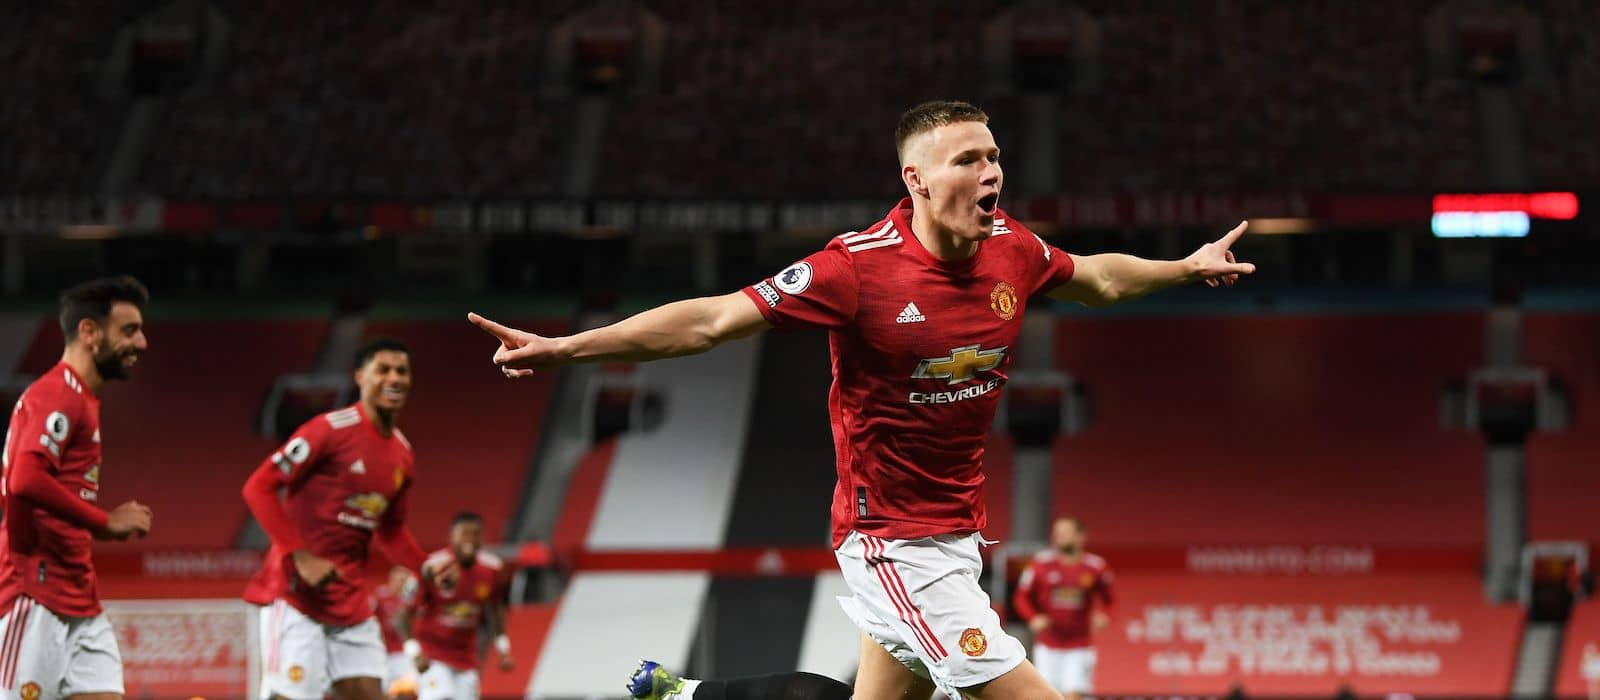 Scott McTominay's Leeds United performance: birth of a new superstar?